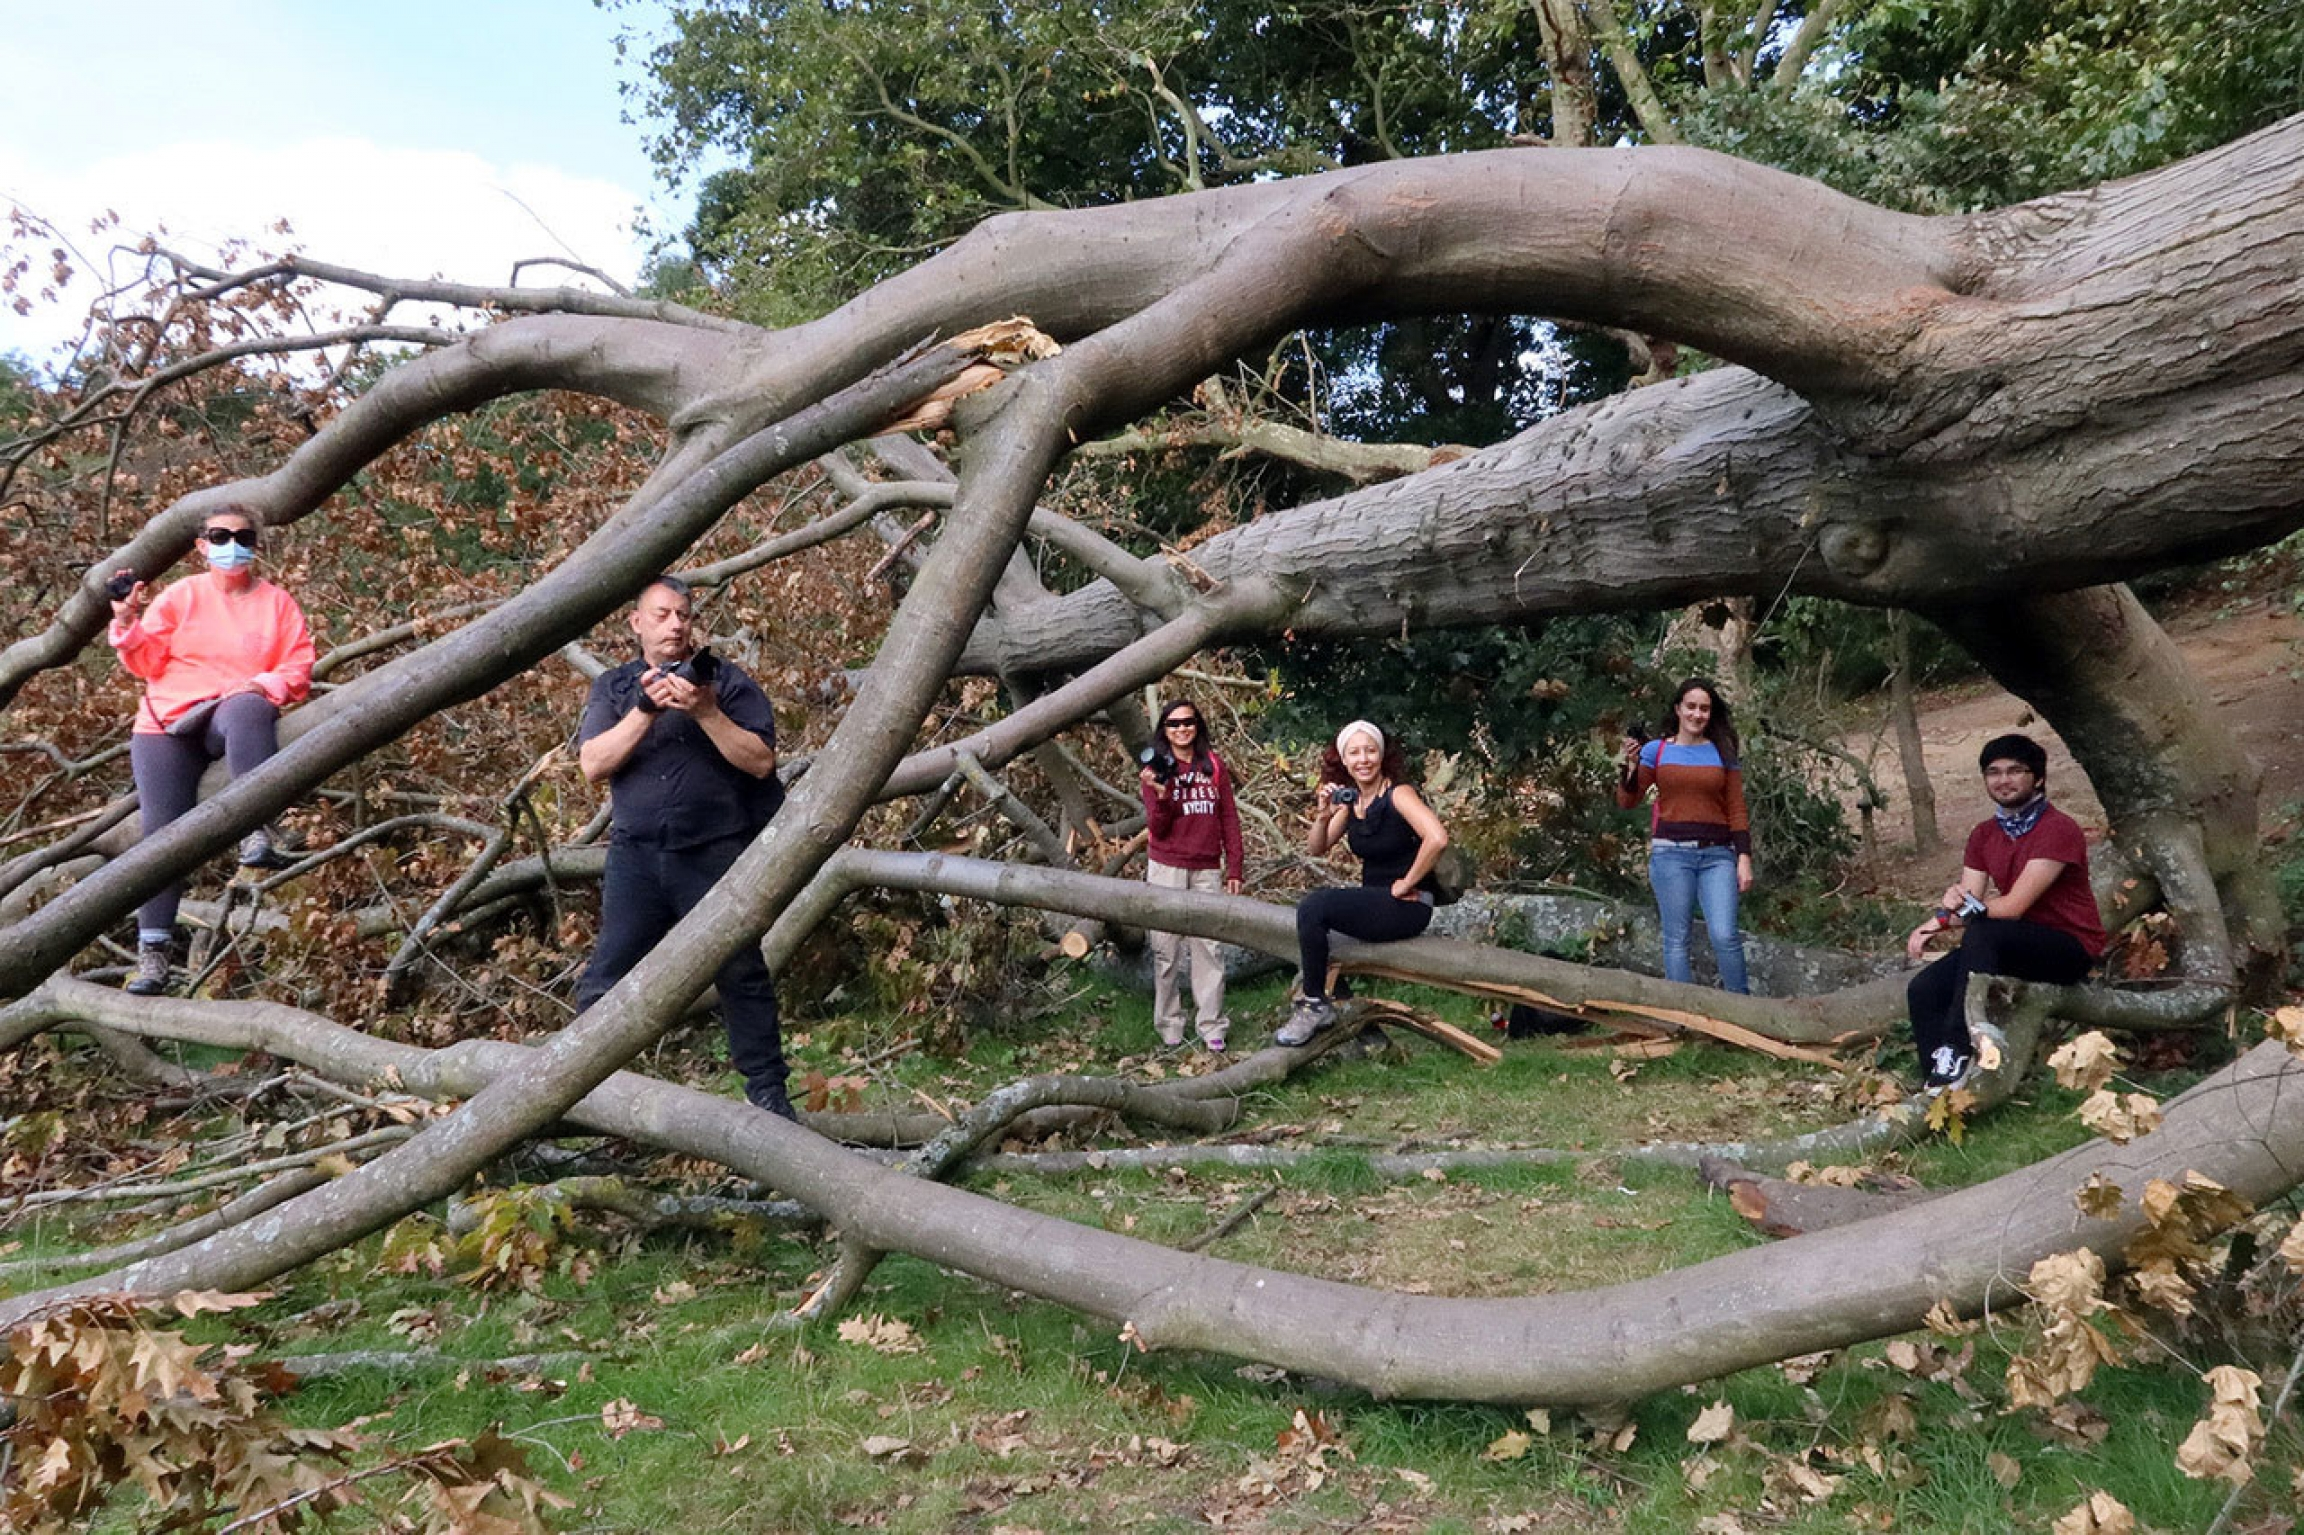 A small group of people are shown standing near or siting on a large tree that has fallen over, each holding a camera.